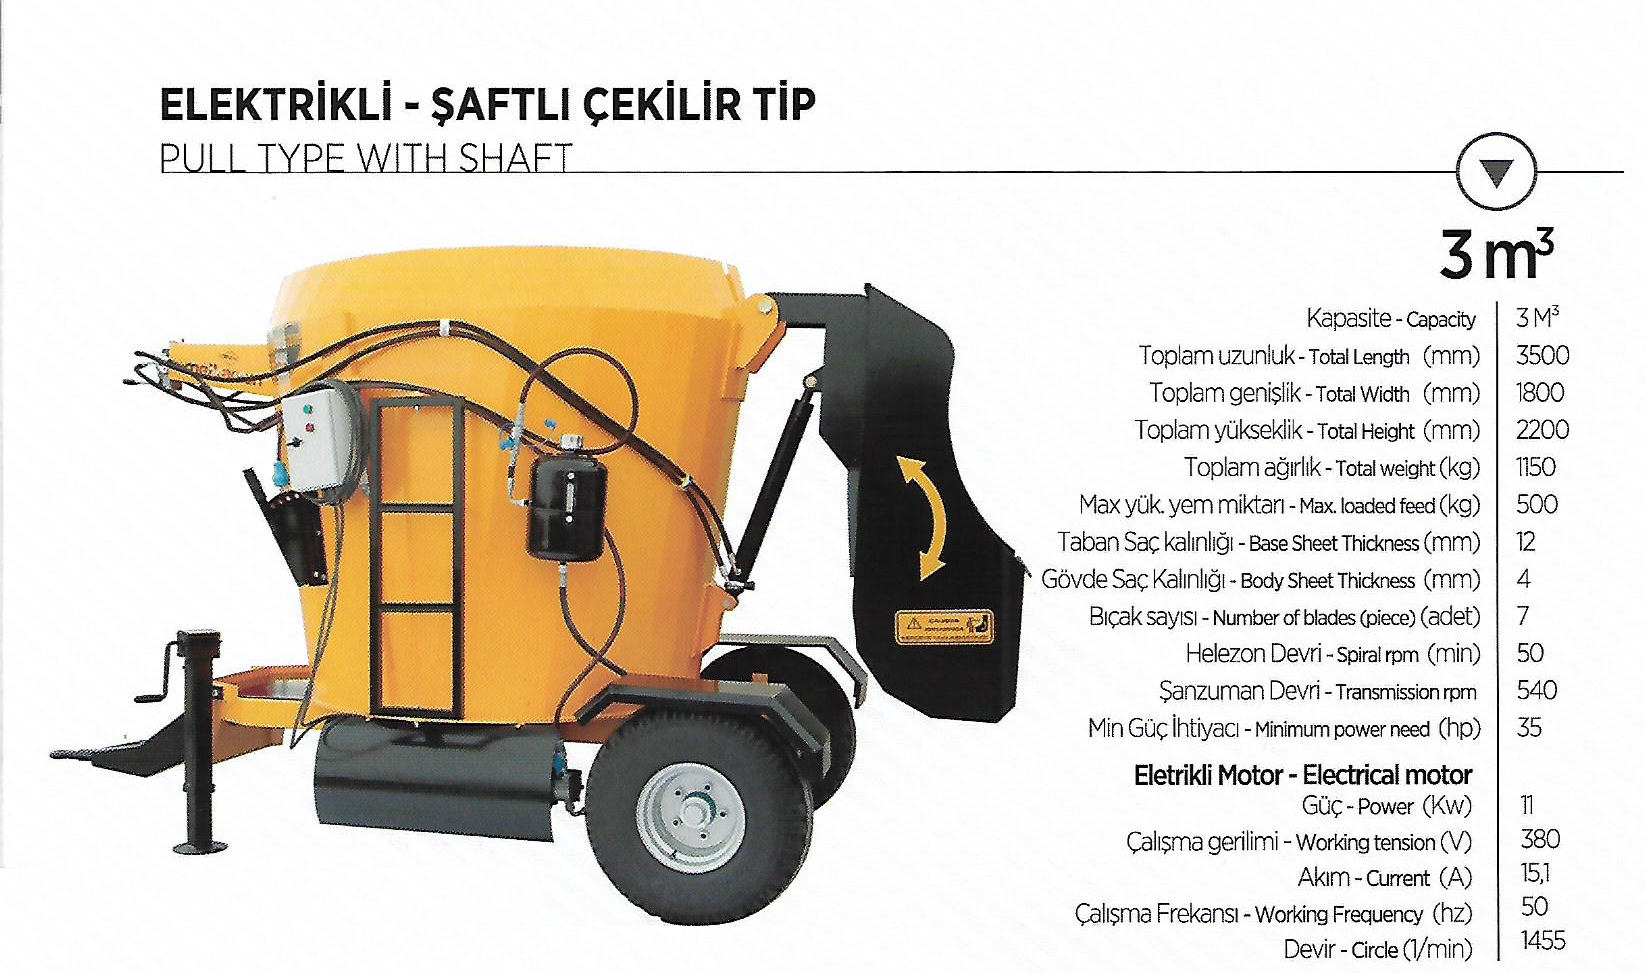 Elektrikli - Şaftlı Çekilir Tip (Pull Type With Shaft) 3m³